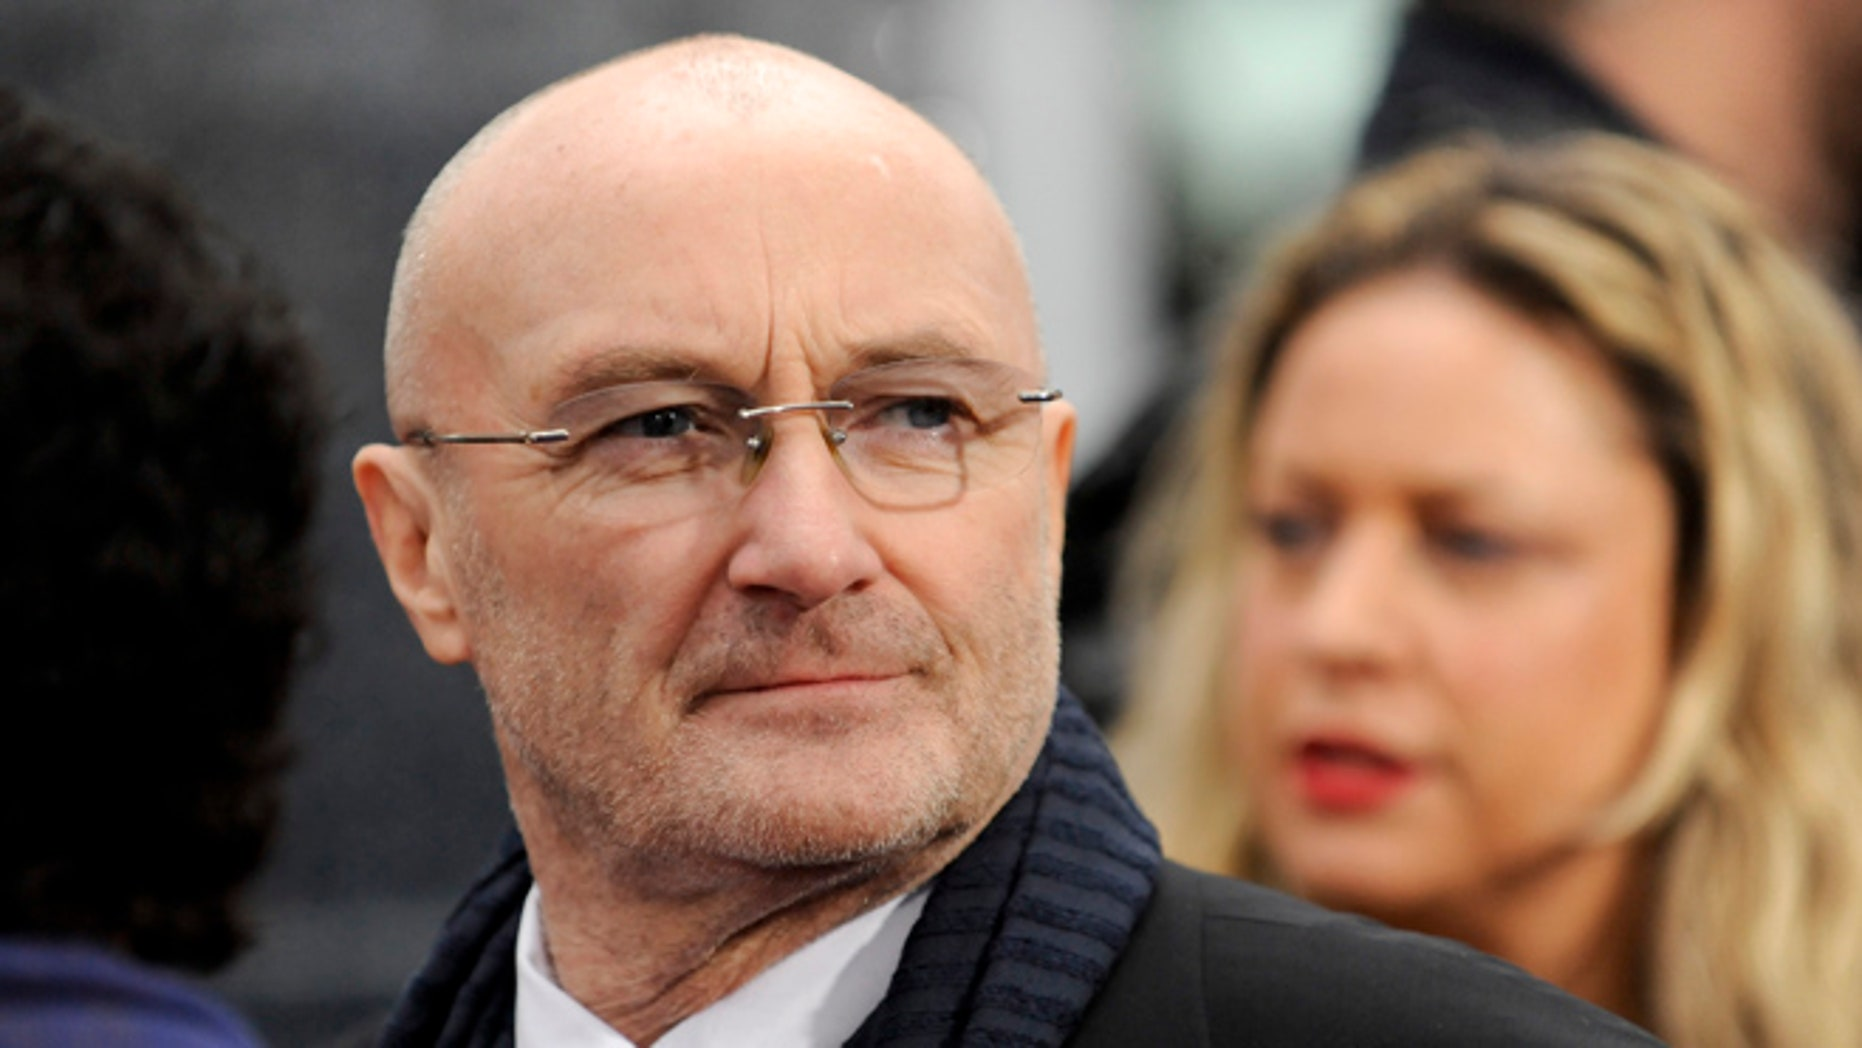 """Phil Collins played a gig on his """"Not Dead Yet"""" tour in New Zealand Wednesday where a man """"clinically died"""" and was resuscitated, a report said."""